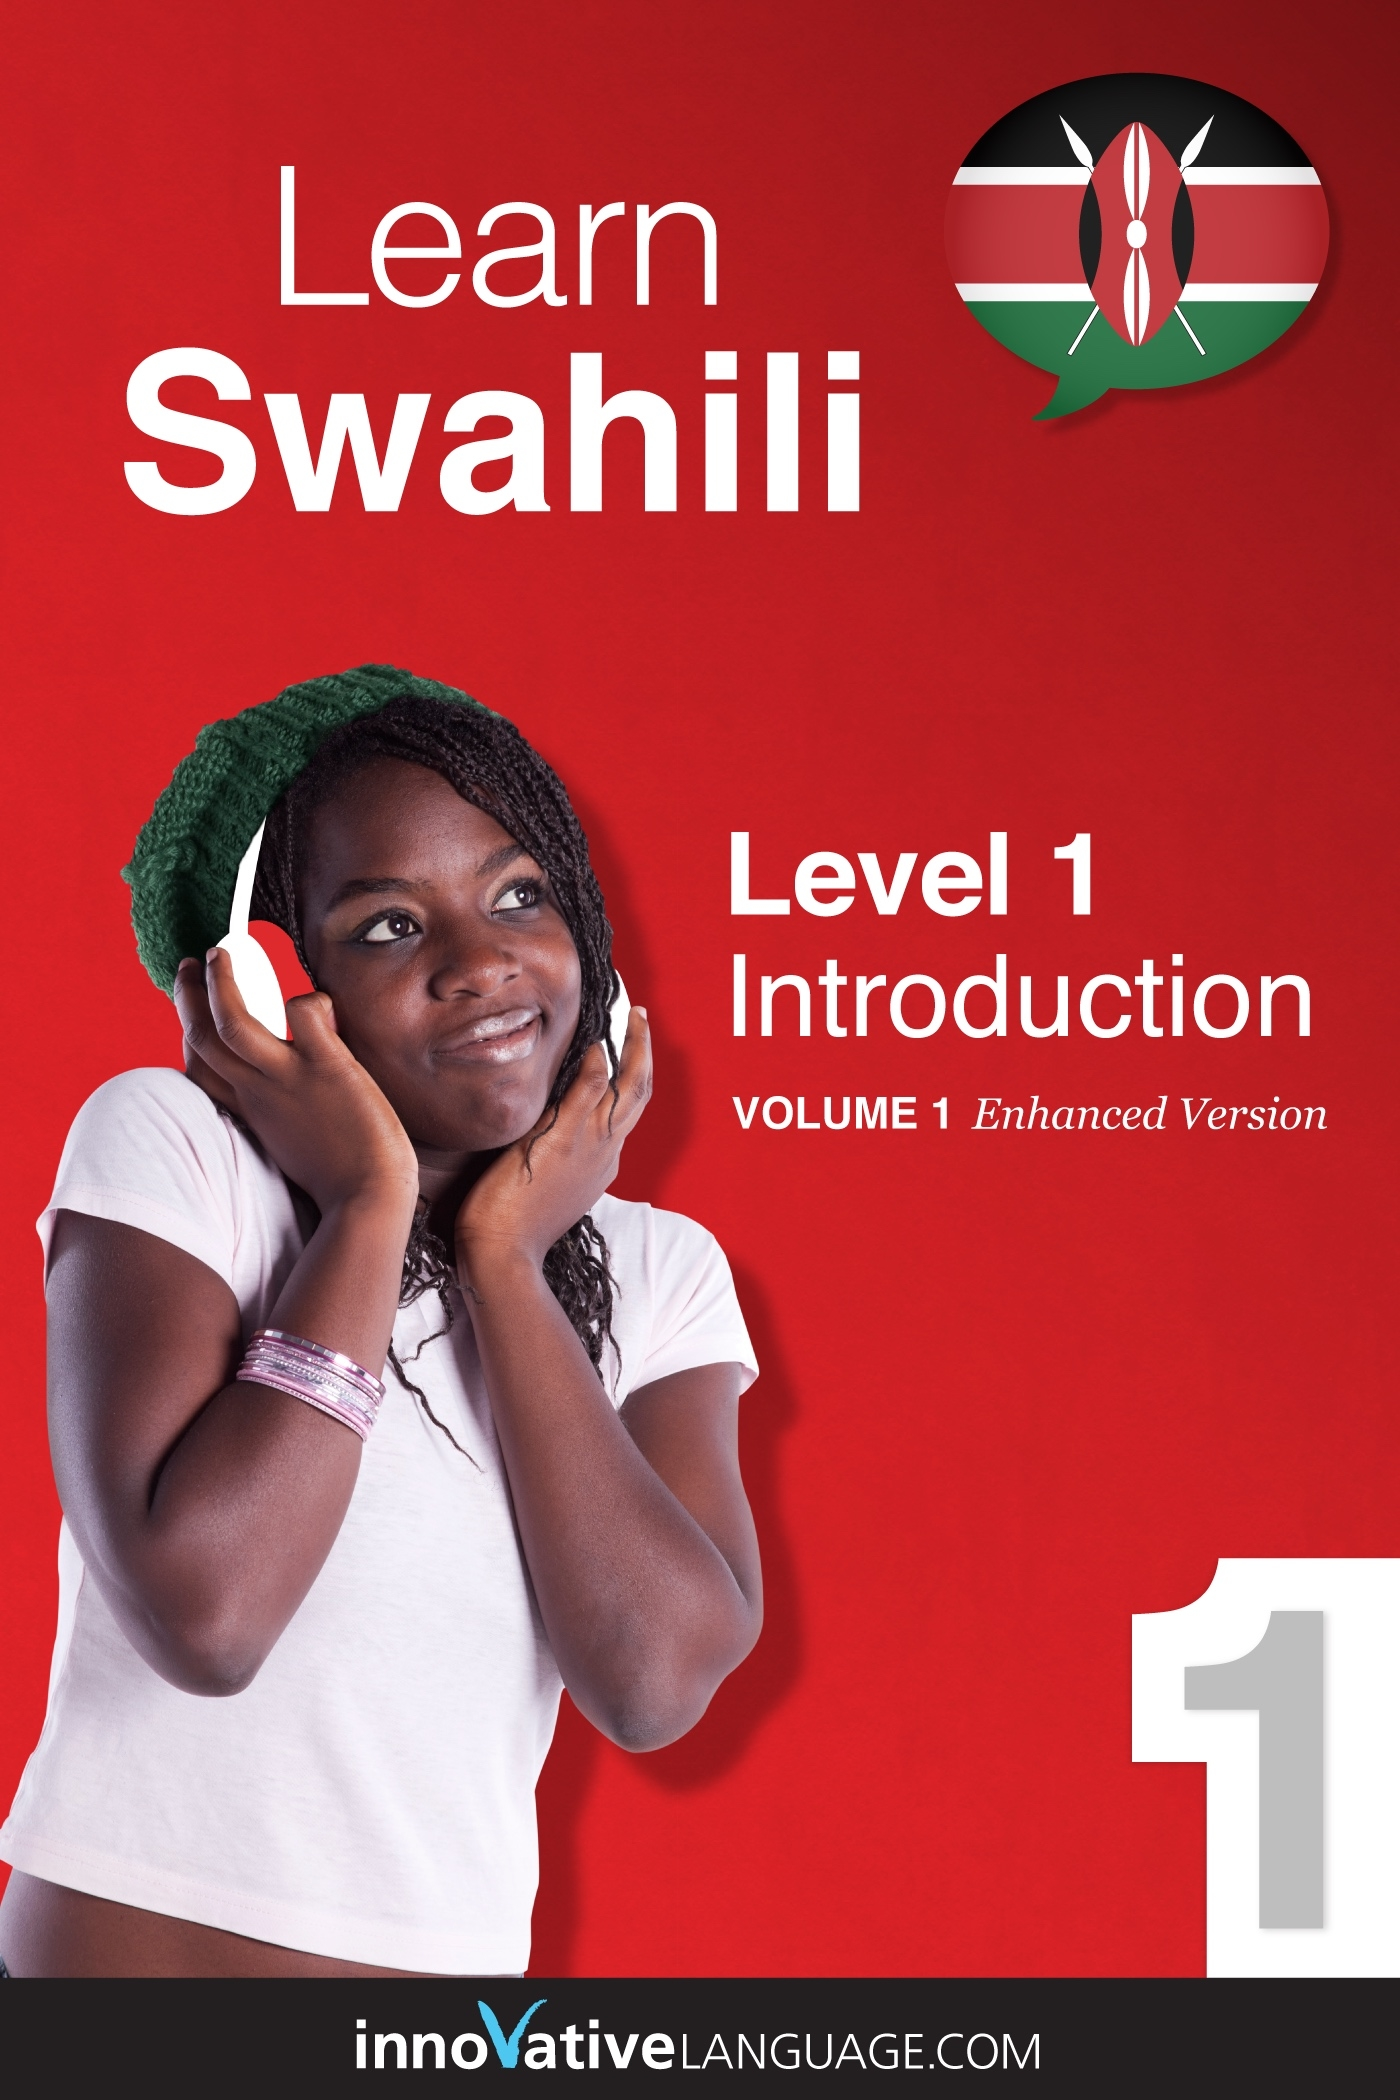 Learn Swahili - Level 1: Introduction